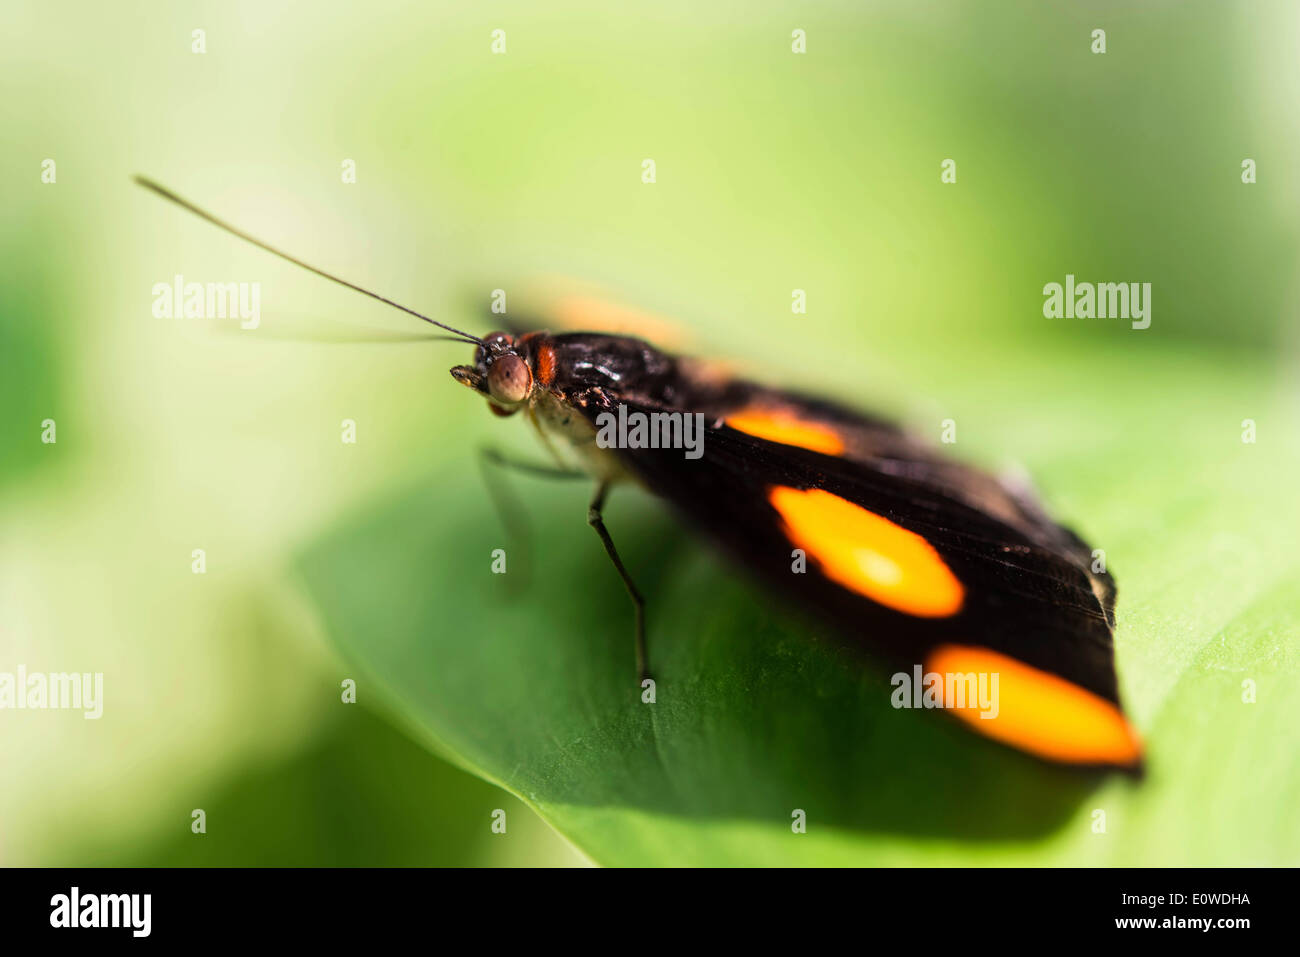 Blue-frosted Banner, Blue-frosted Catone or Grecian Shoemaker (Catonephele numilia), butterfly perched on a green leaf, captive - Stock Image